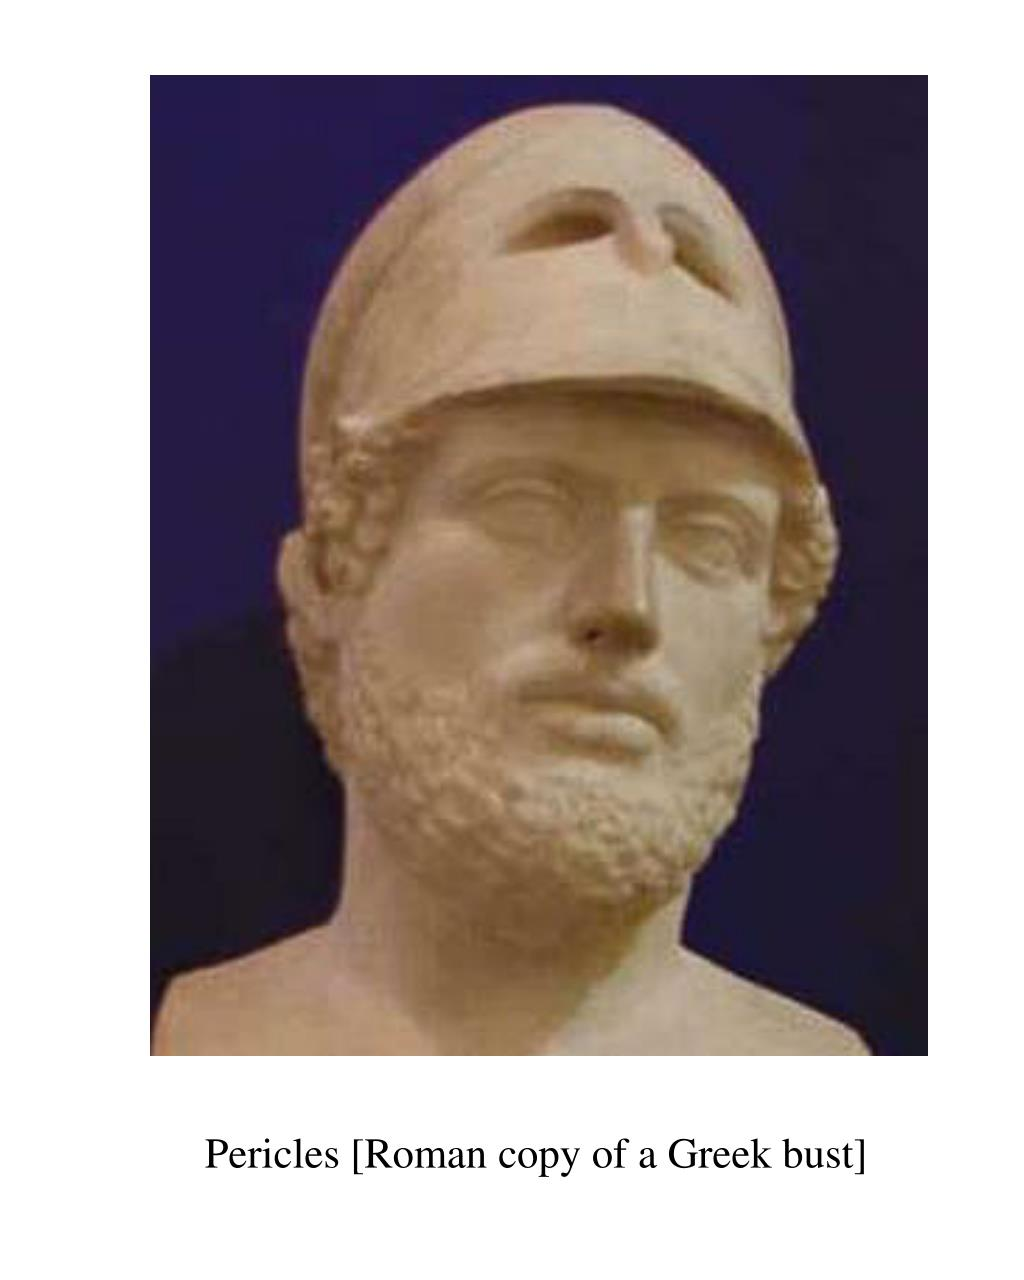 Pericles [Roman copy of a Greek bust]